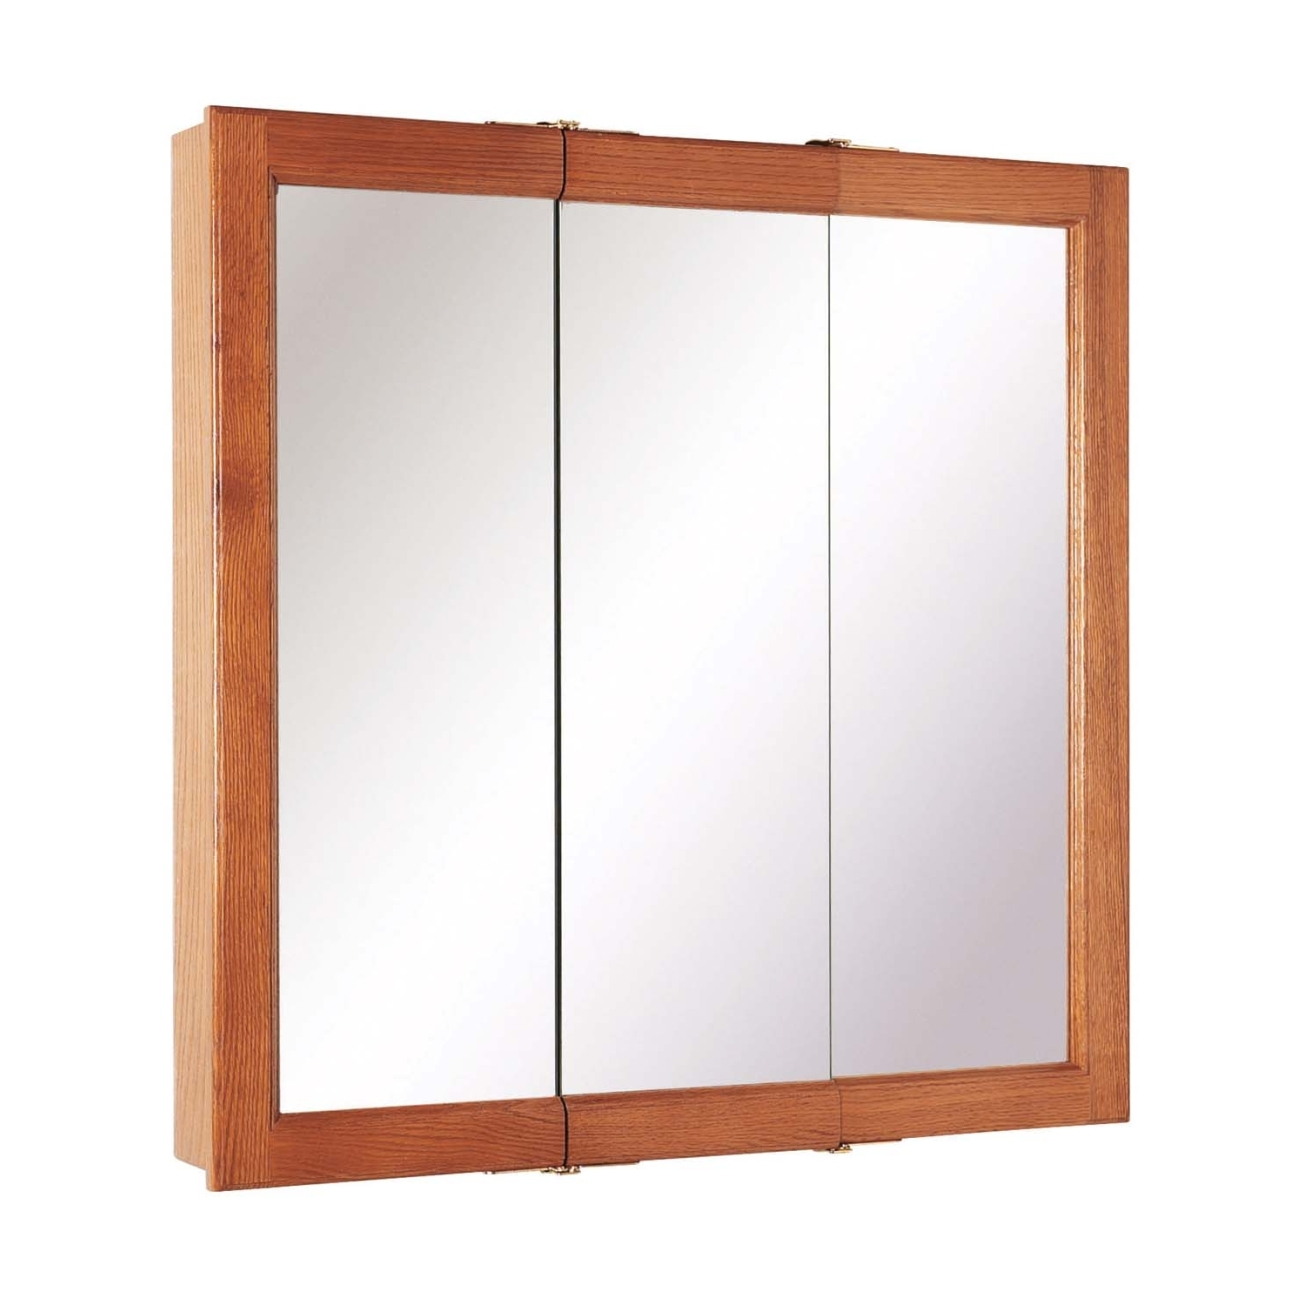 Permalink to Replacement Bathroom Cabinet Mirrored Doors